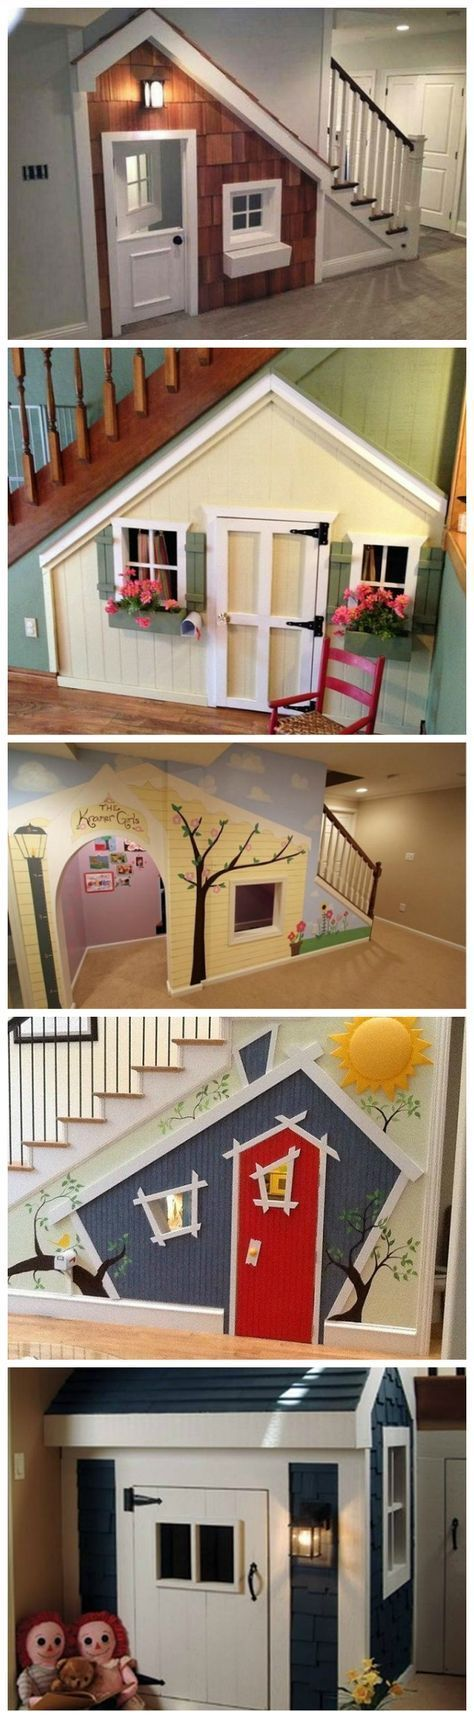 25 best ideas about kids indoor playhouse on pinterest for Playhouse ideas inside